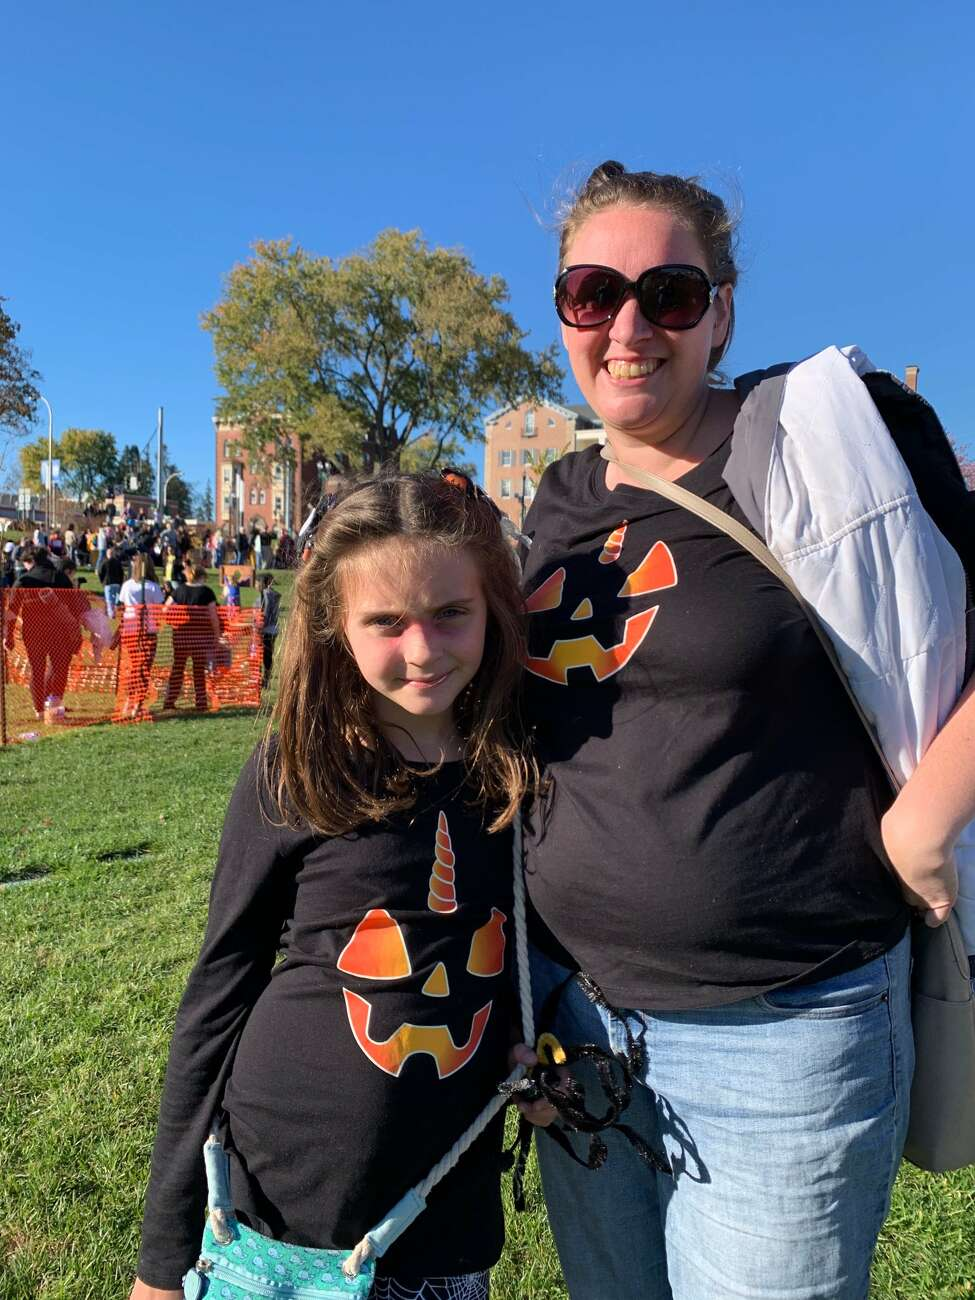 Were you Seen at the 2019 Downtown Schenectady Fall Spooktacular on Oct. 19, 2019, at Gateway Park in Schenectady, N.Y.